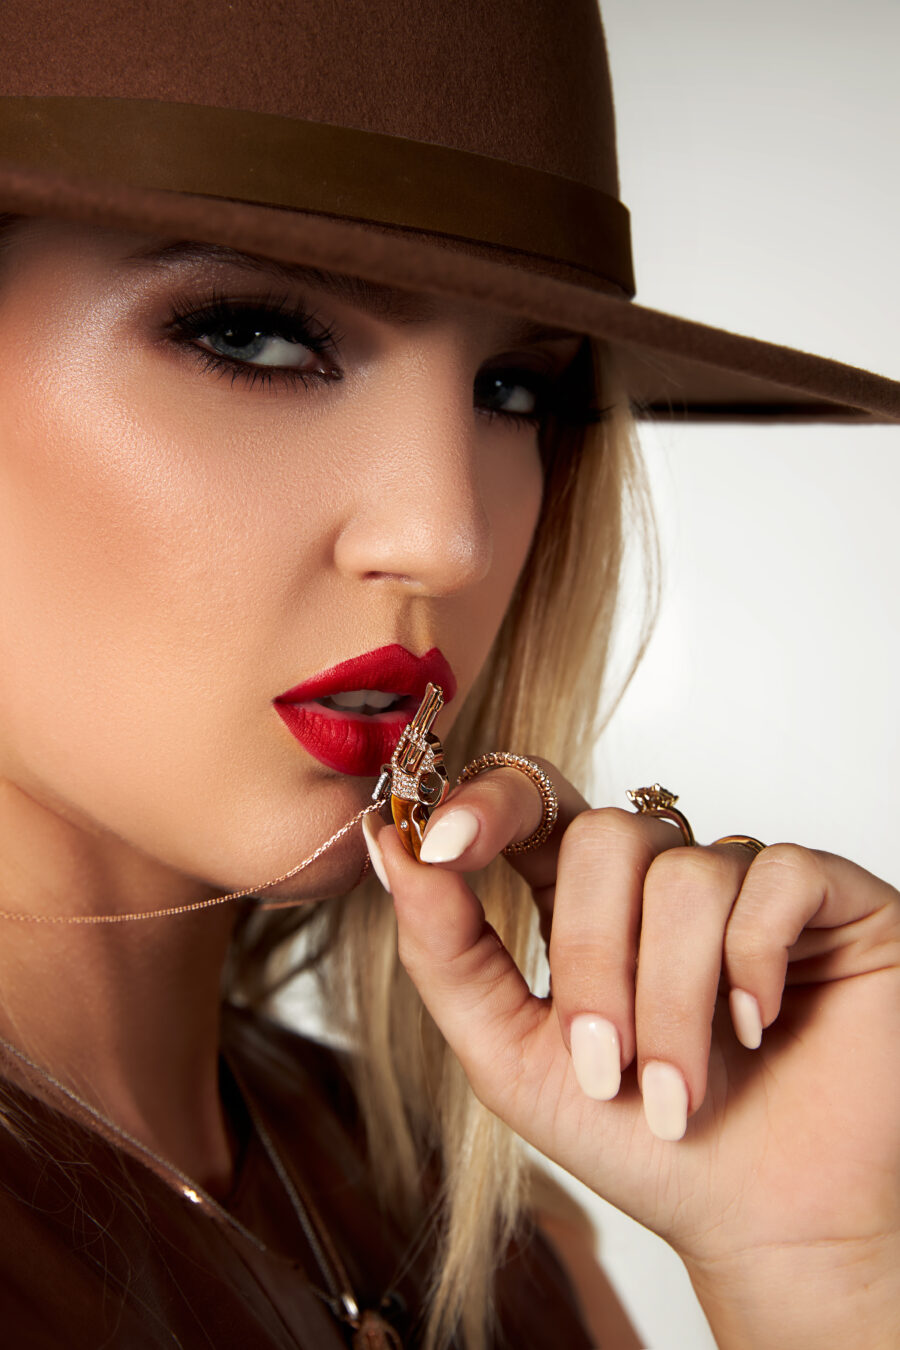 peacemaker gun revolver pendant necklace jewelry collection model photo 3